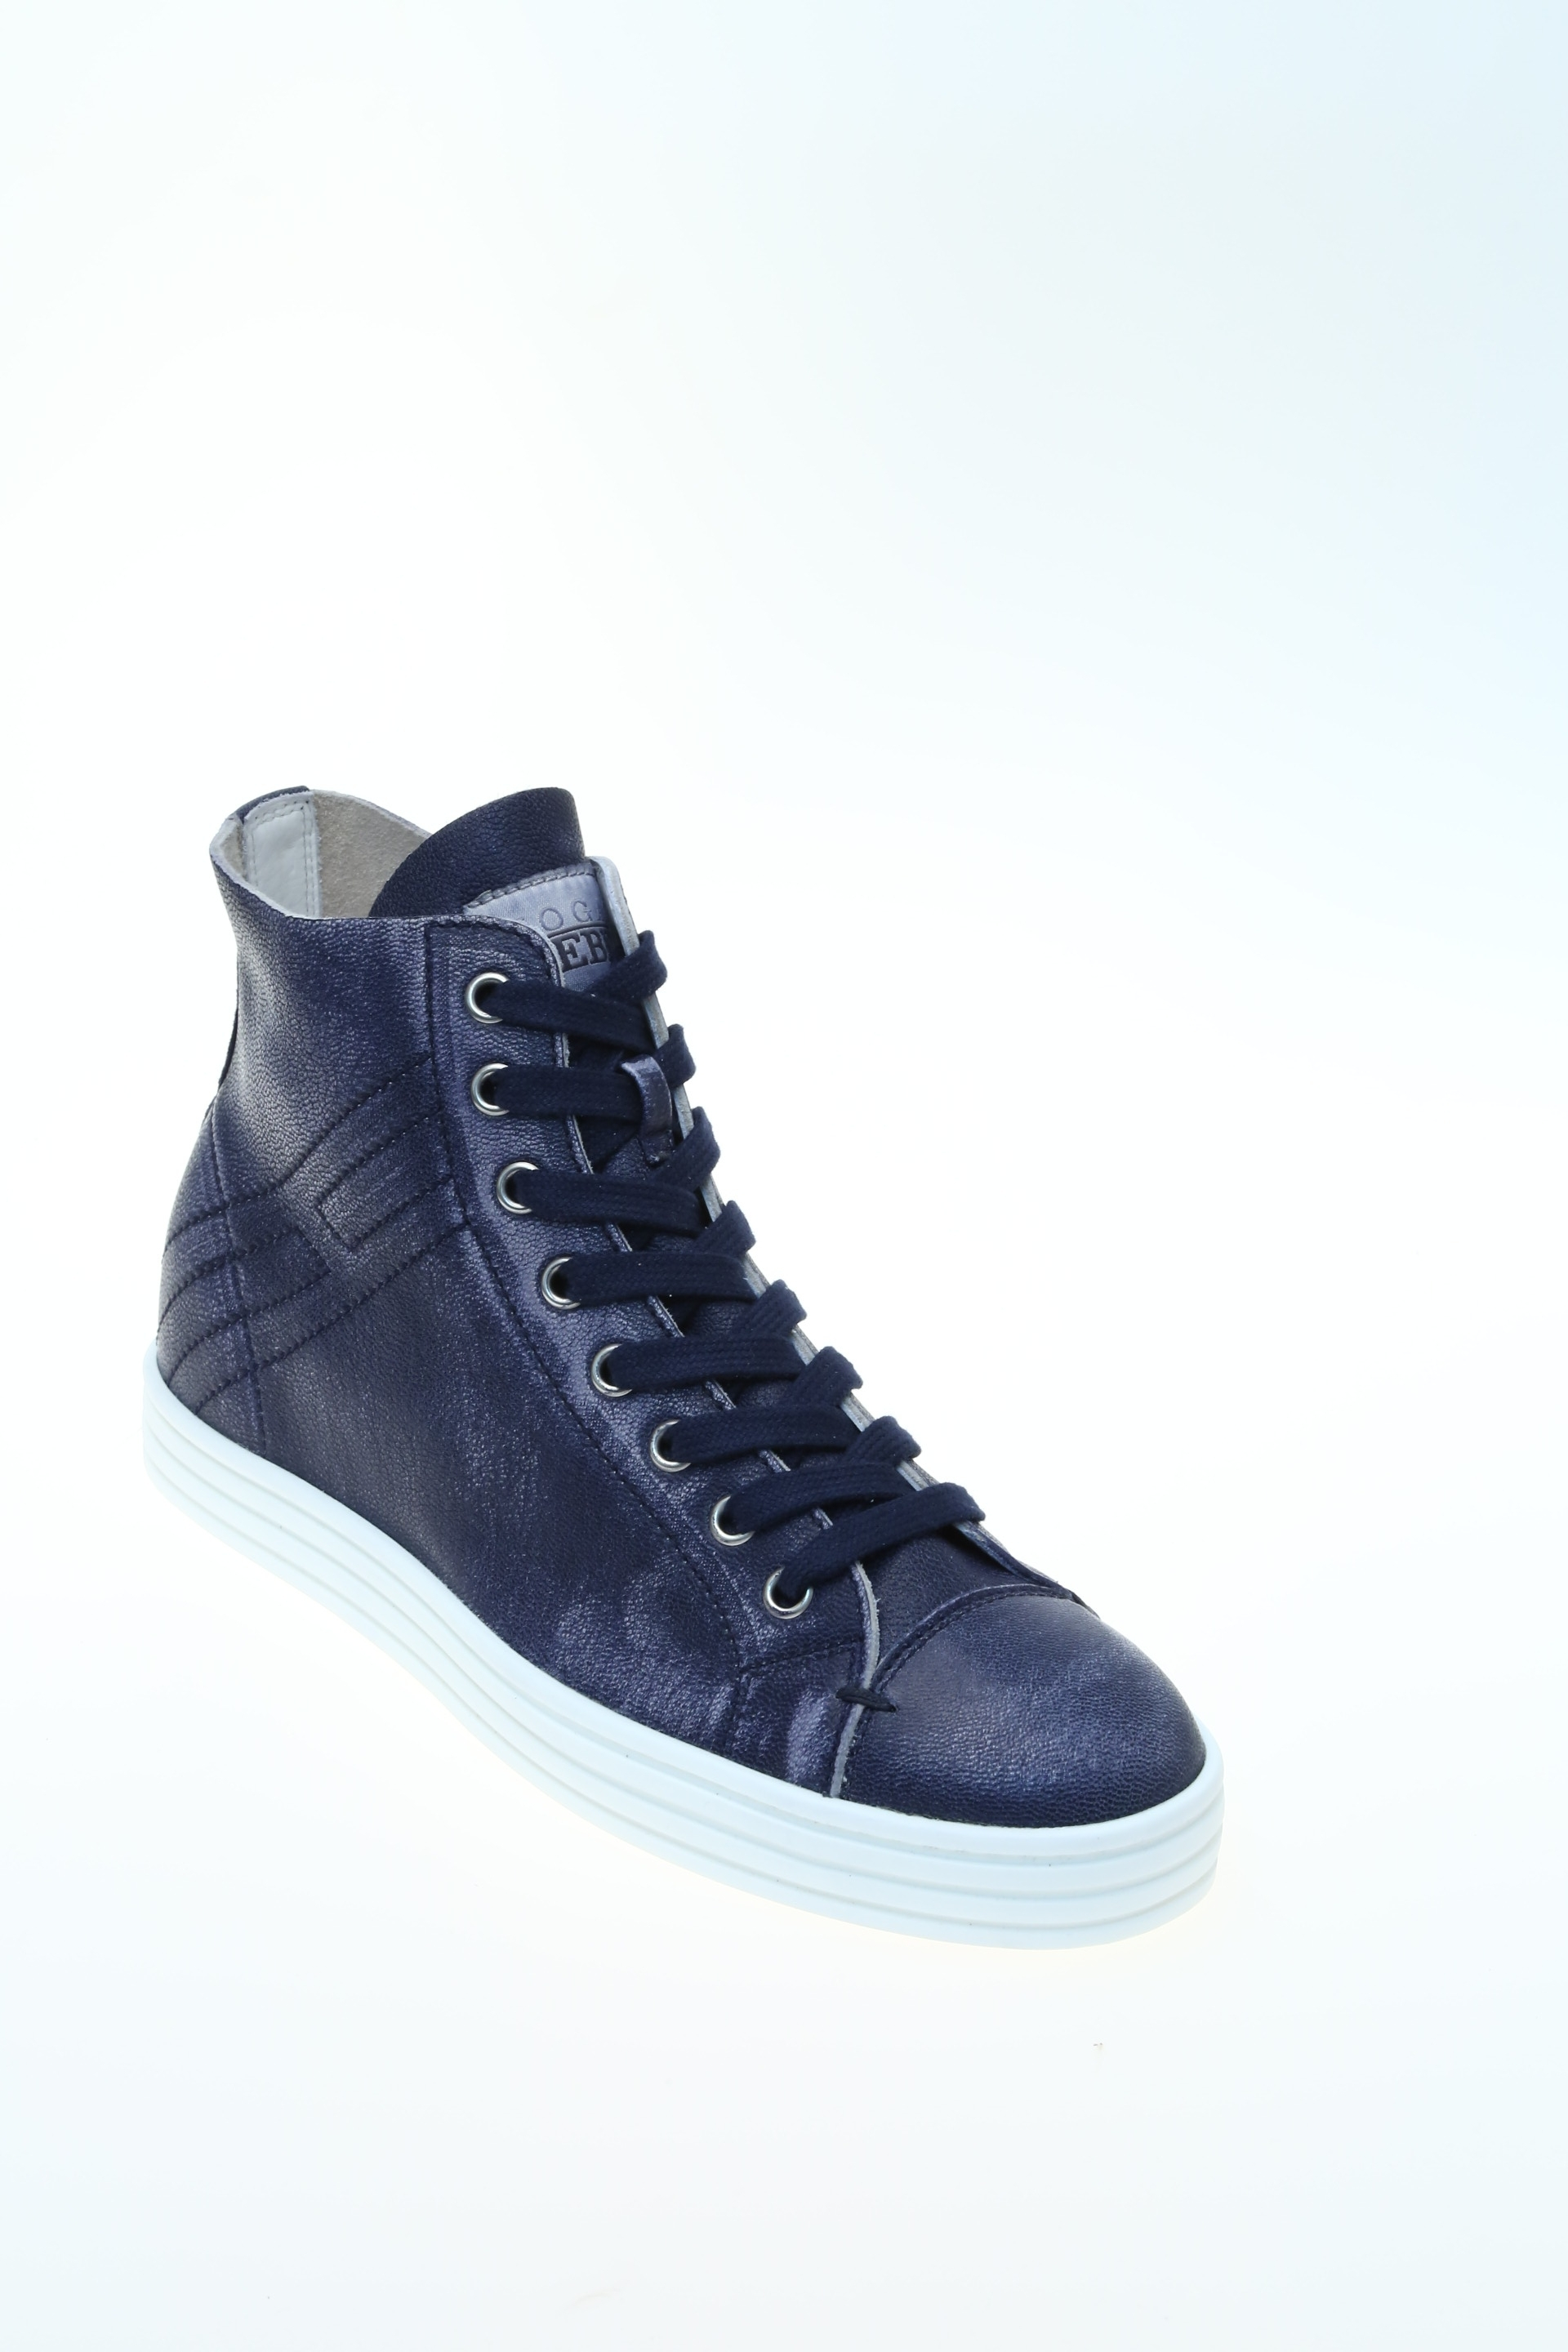 Hogan Rebel Sneaker Blu Gomma Hogan Rebel Sneakers